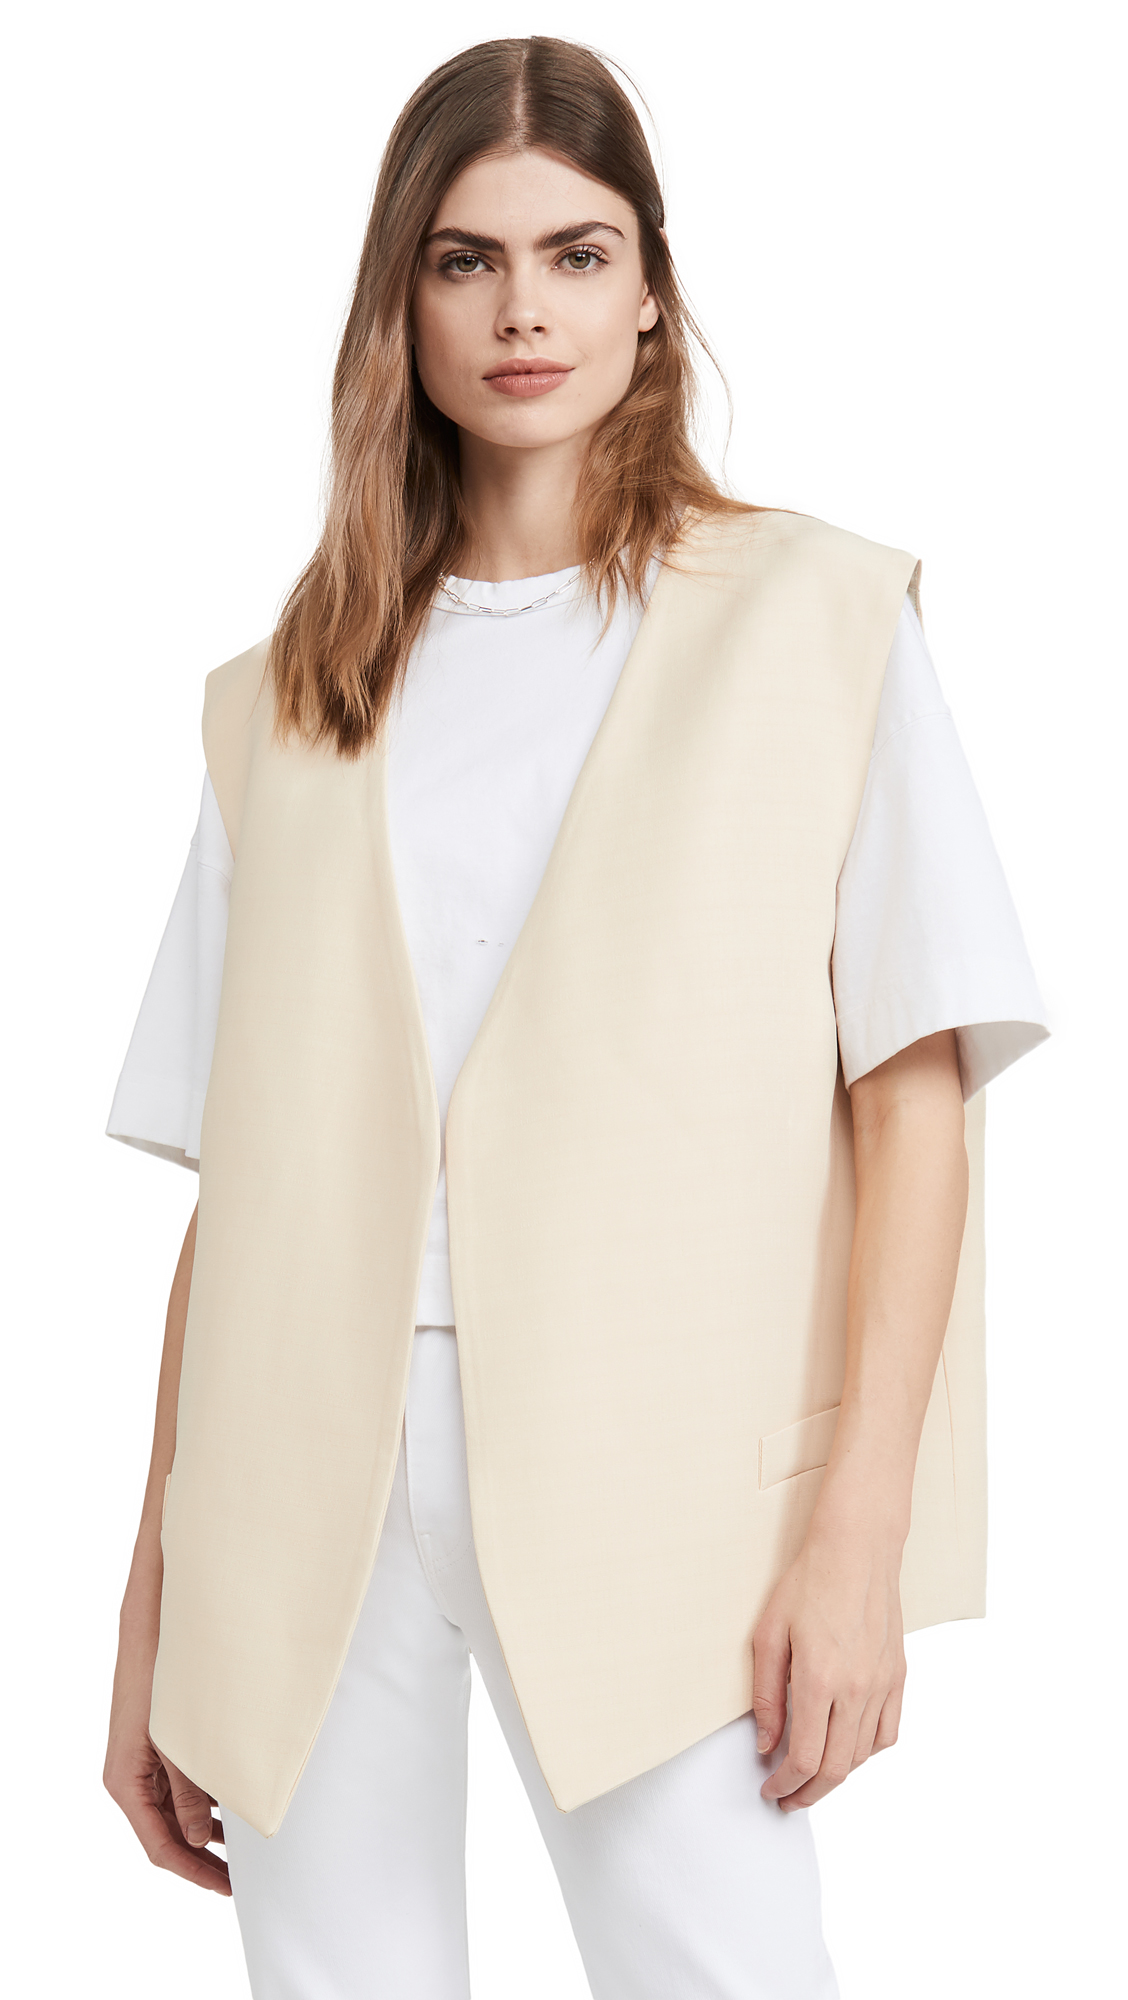 Buy Acne Studios Oversized Waist Coat online beautiful Acne Studios Jackets, Coats, Down Jackets